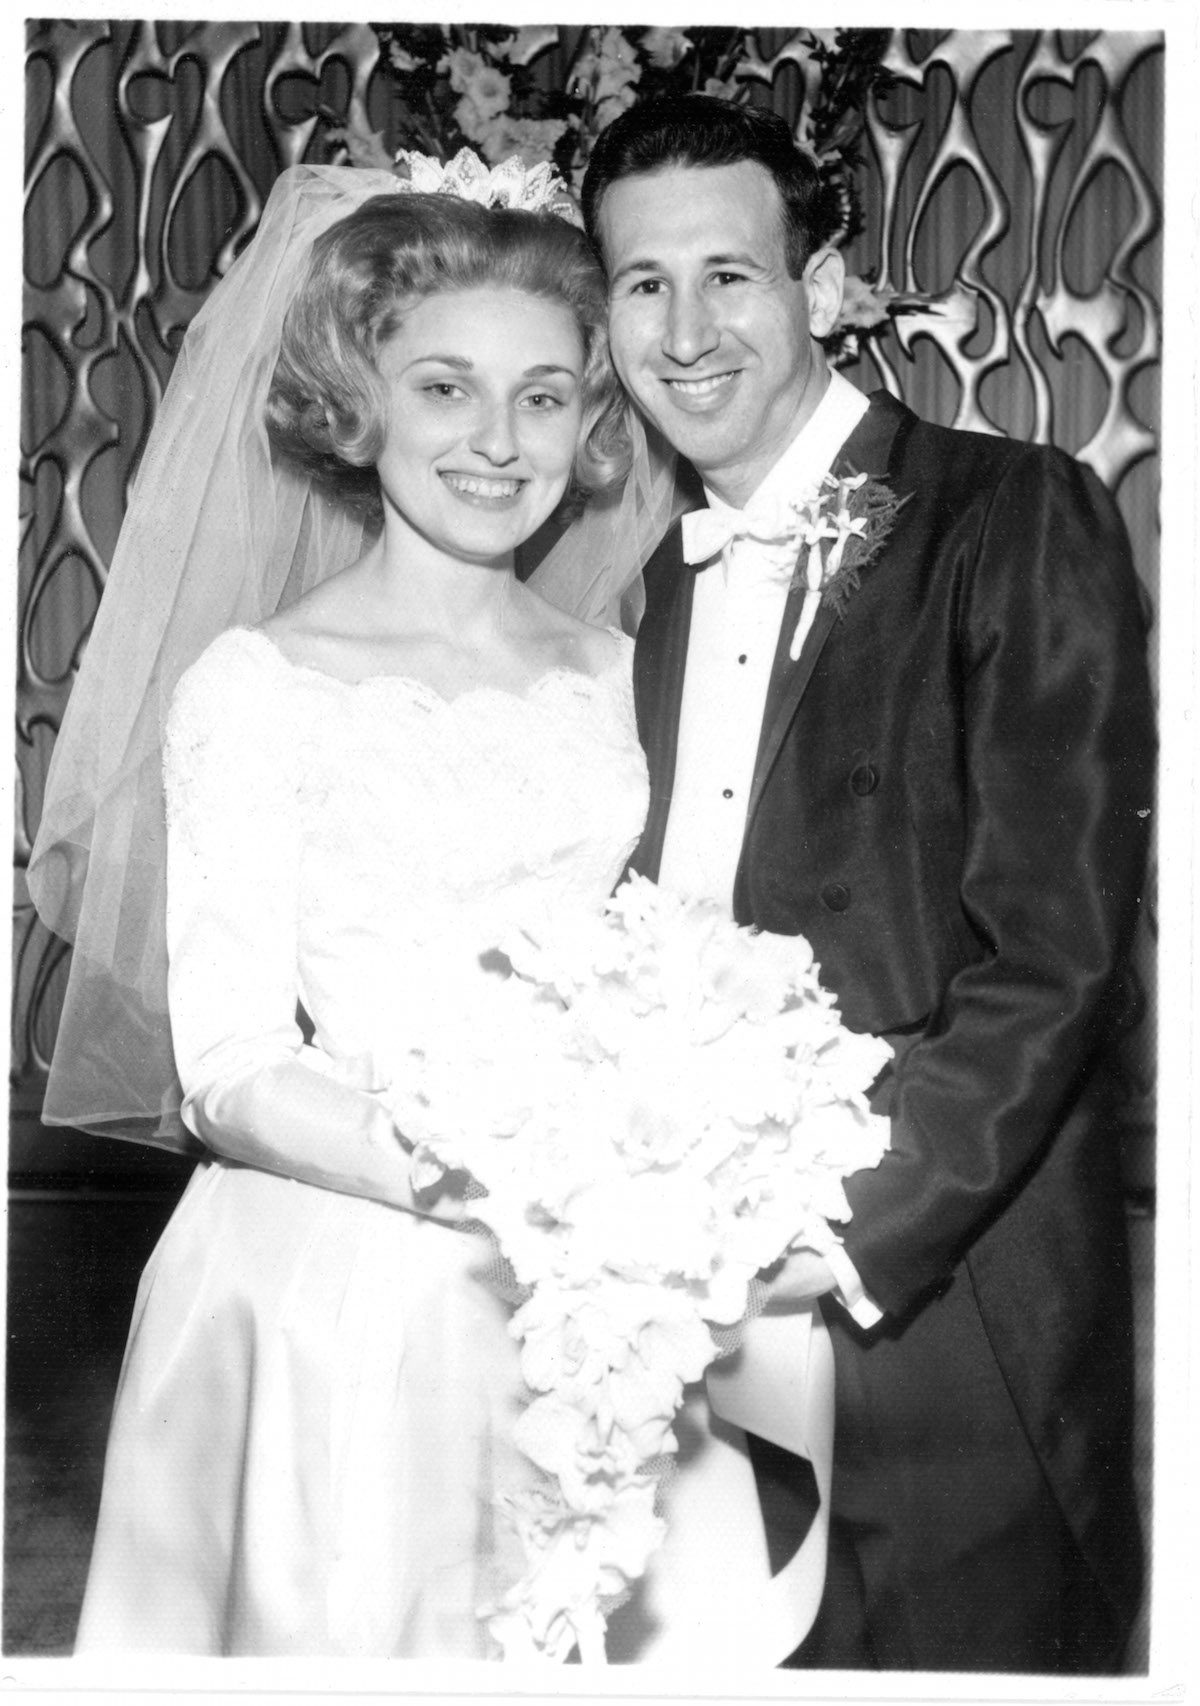 Wedding photo of Sharon and Gilbert Strauber, unknown time and place.